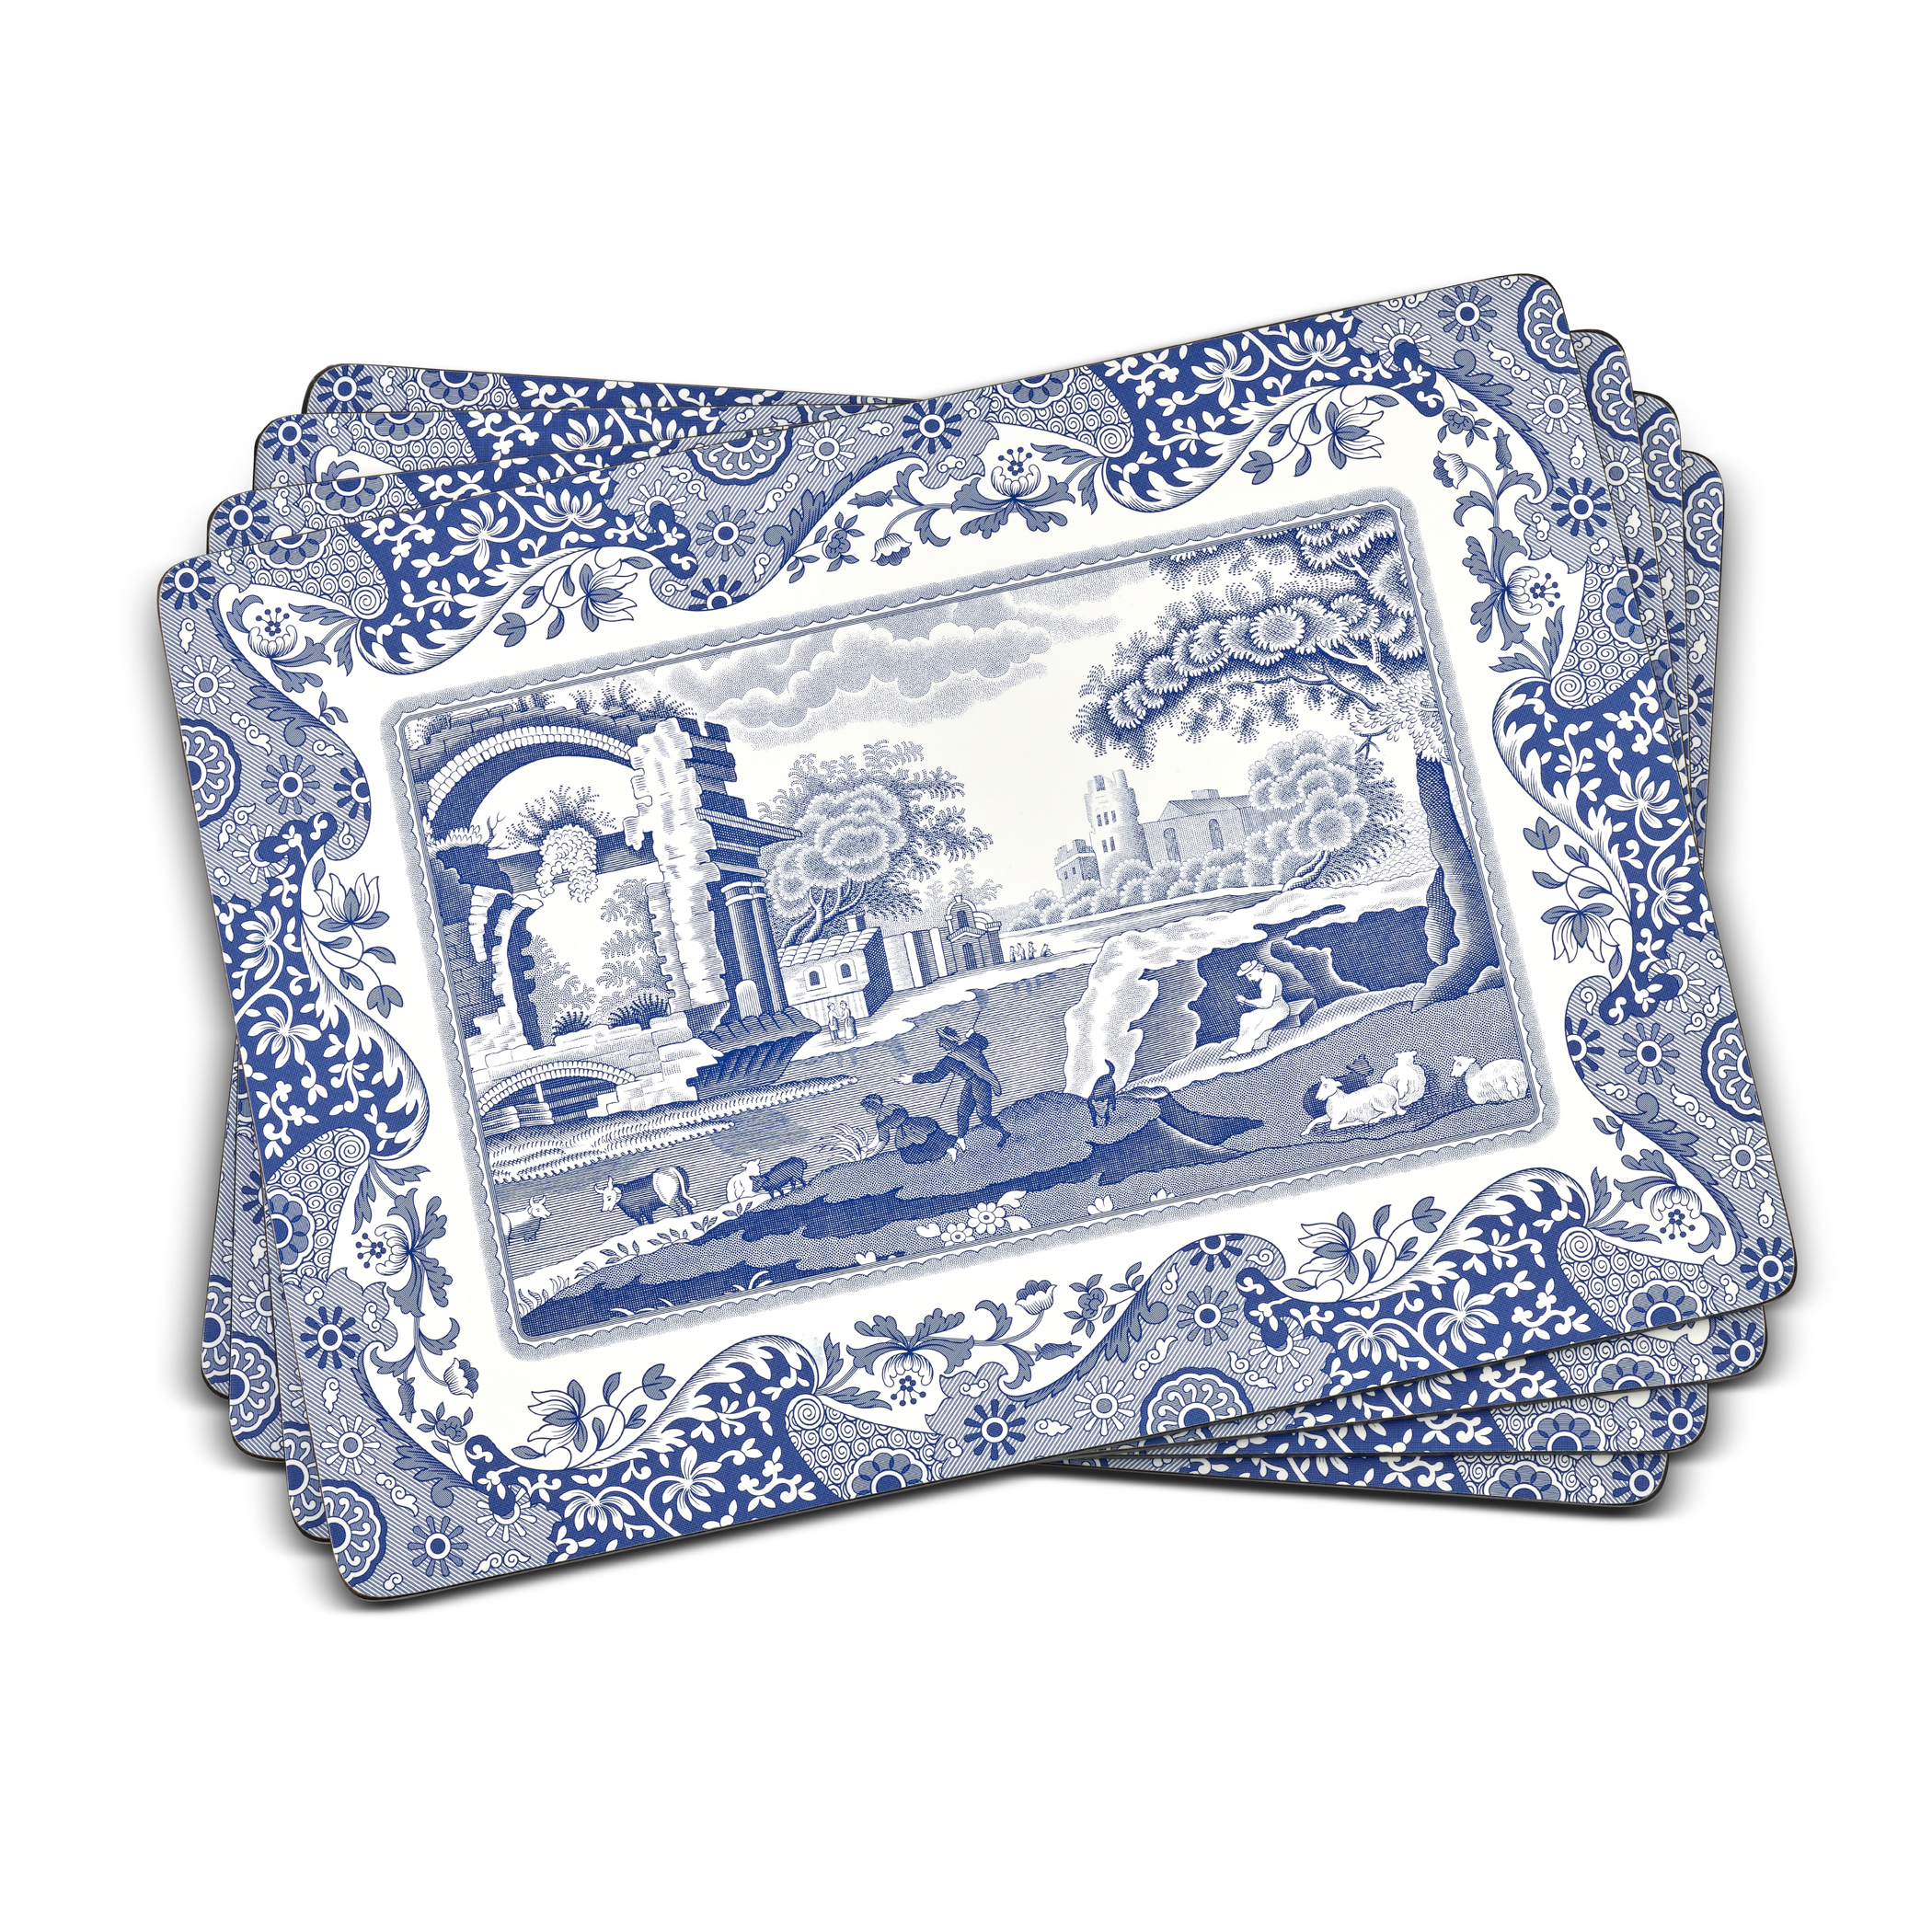 Pimpernel Blue Italian Placemats Set of 4 image number 0